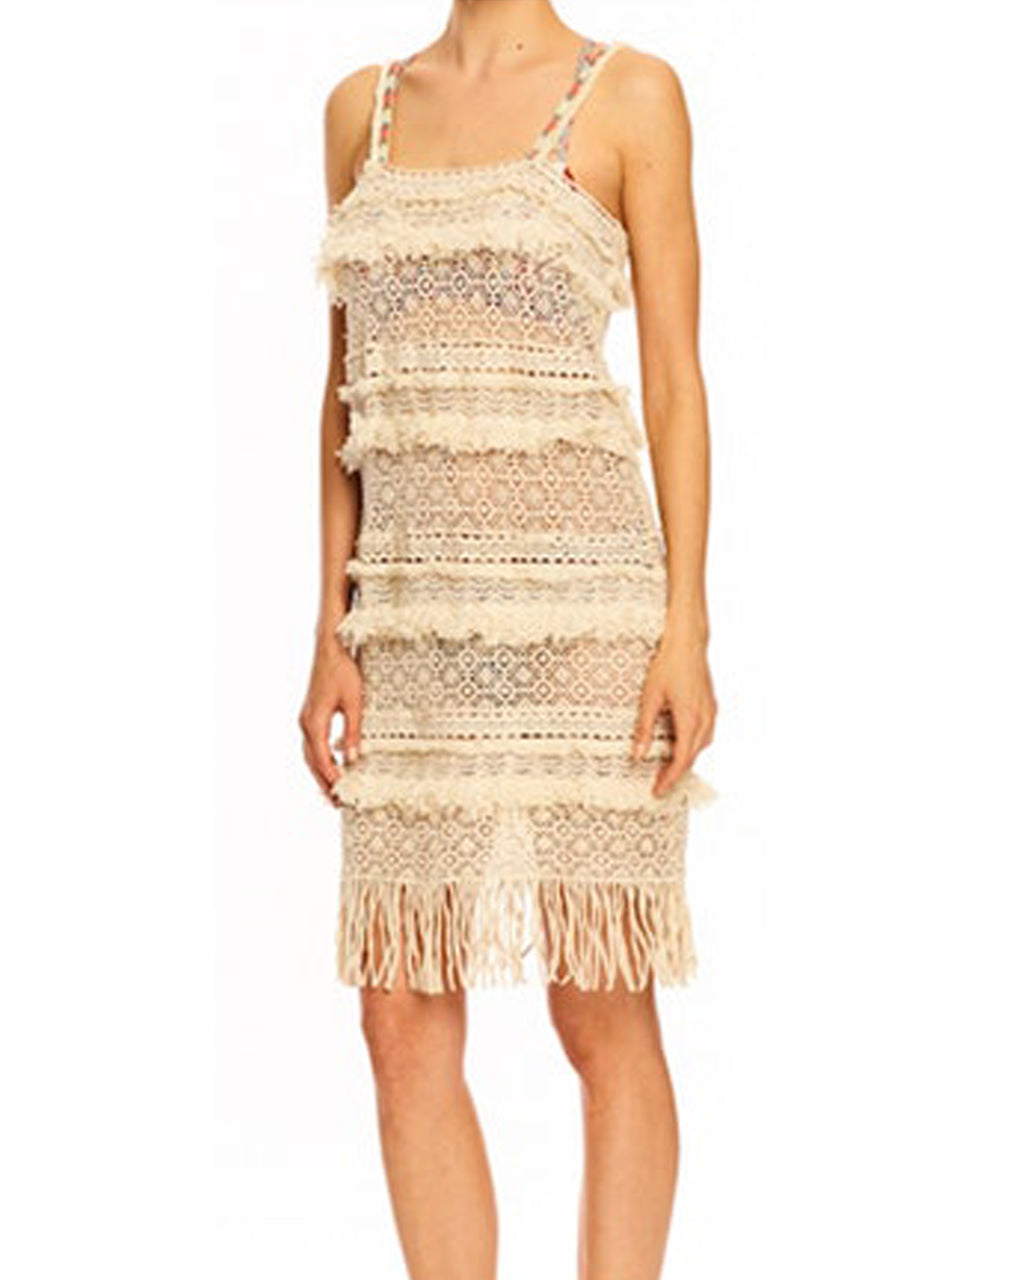 BI10134 - BOBO FRINGE MULTI LACES TANK DRESS - samples - dresses - Fringe is the ultimate accessory. It's showcased all over this tank dress, which has spaghetti straps that support the lace-spread and fringe-embellished body. Final Sale